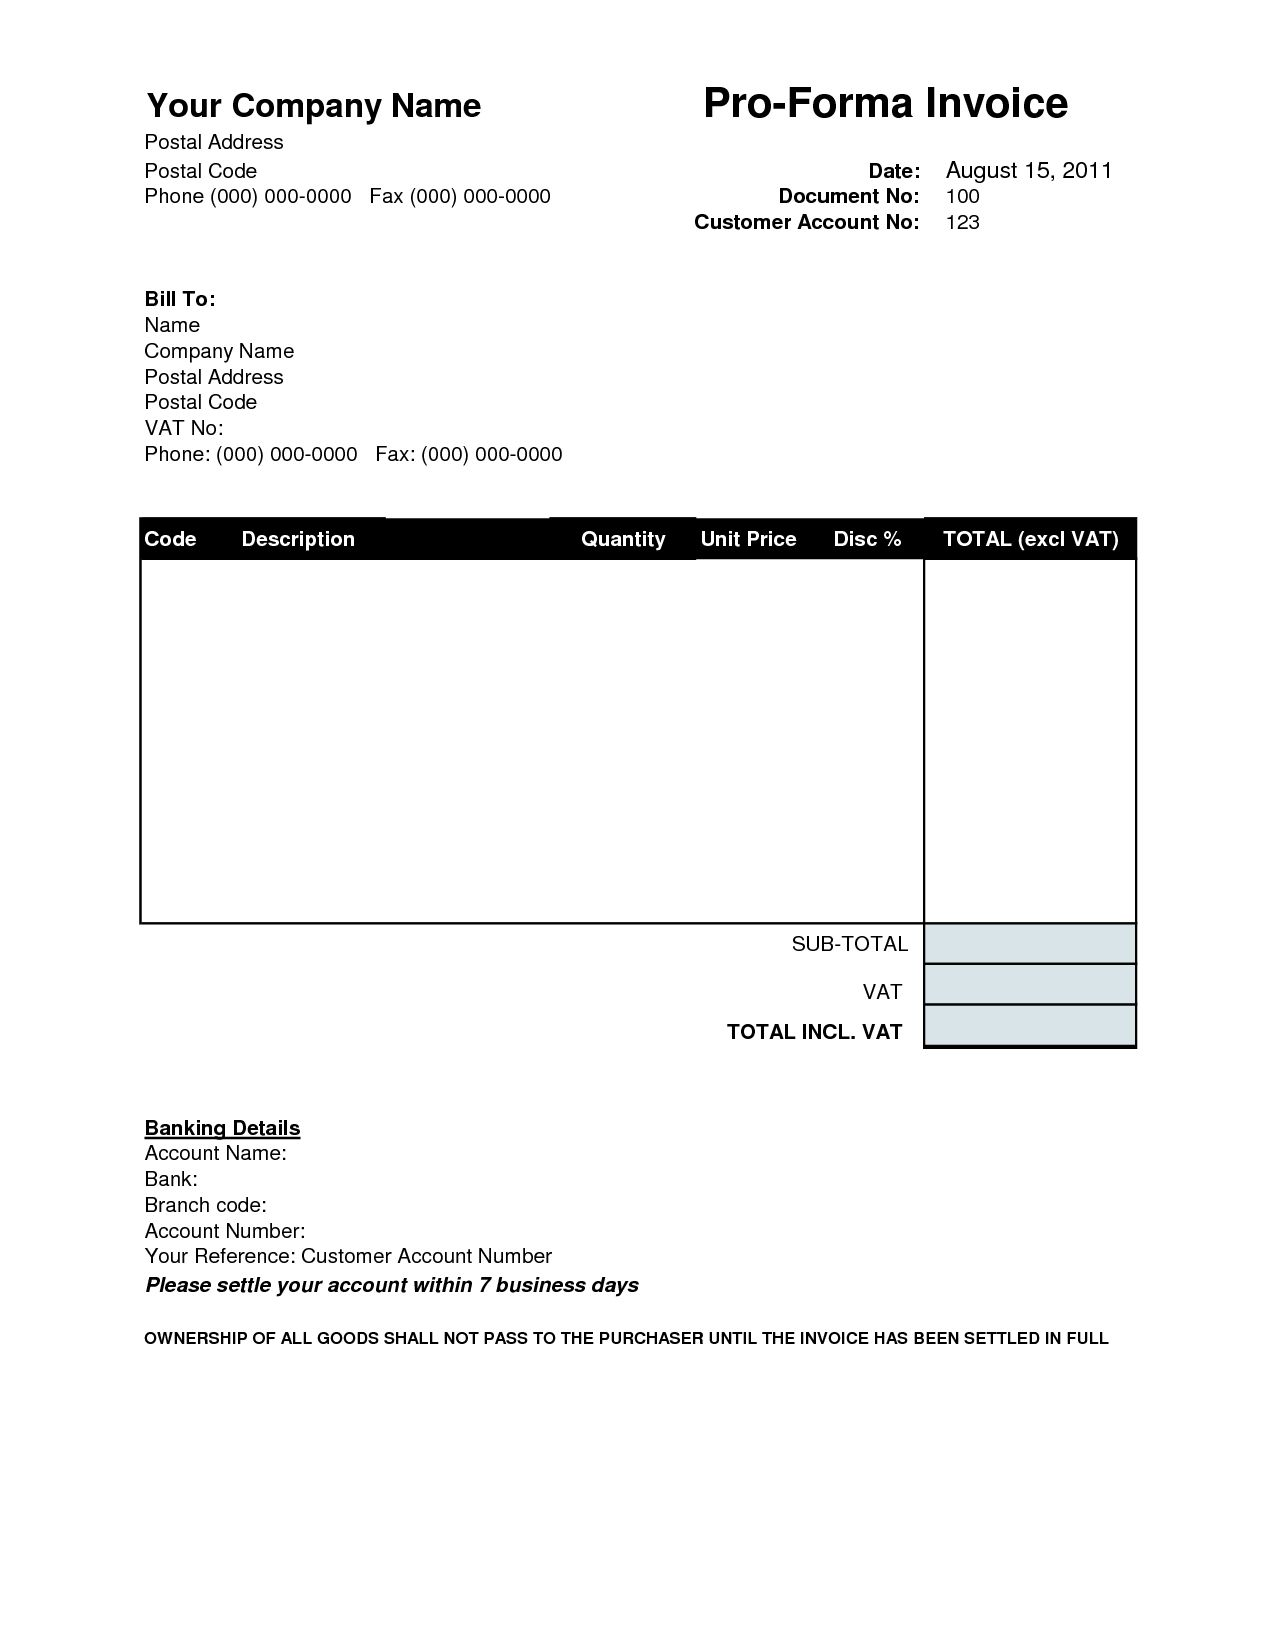 proforma invoice sample invoice template ideas performa invoice sample